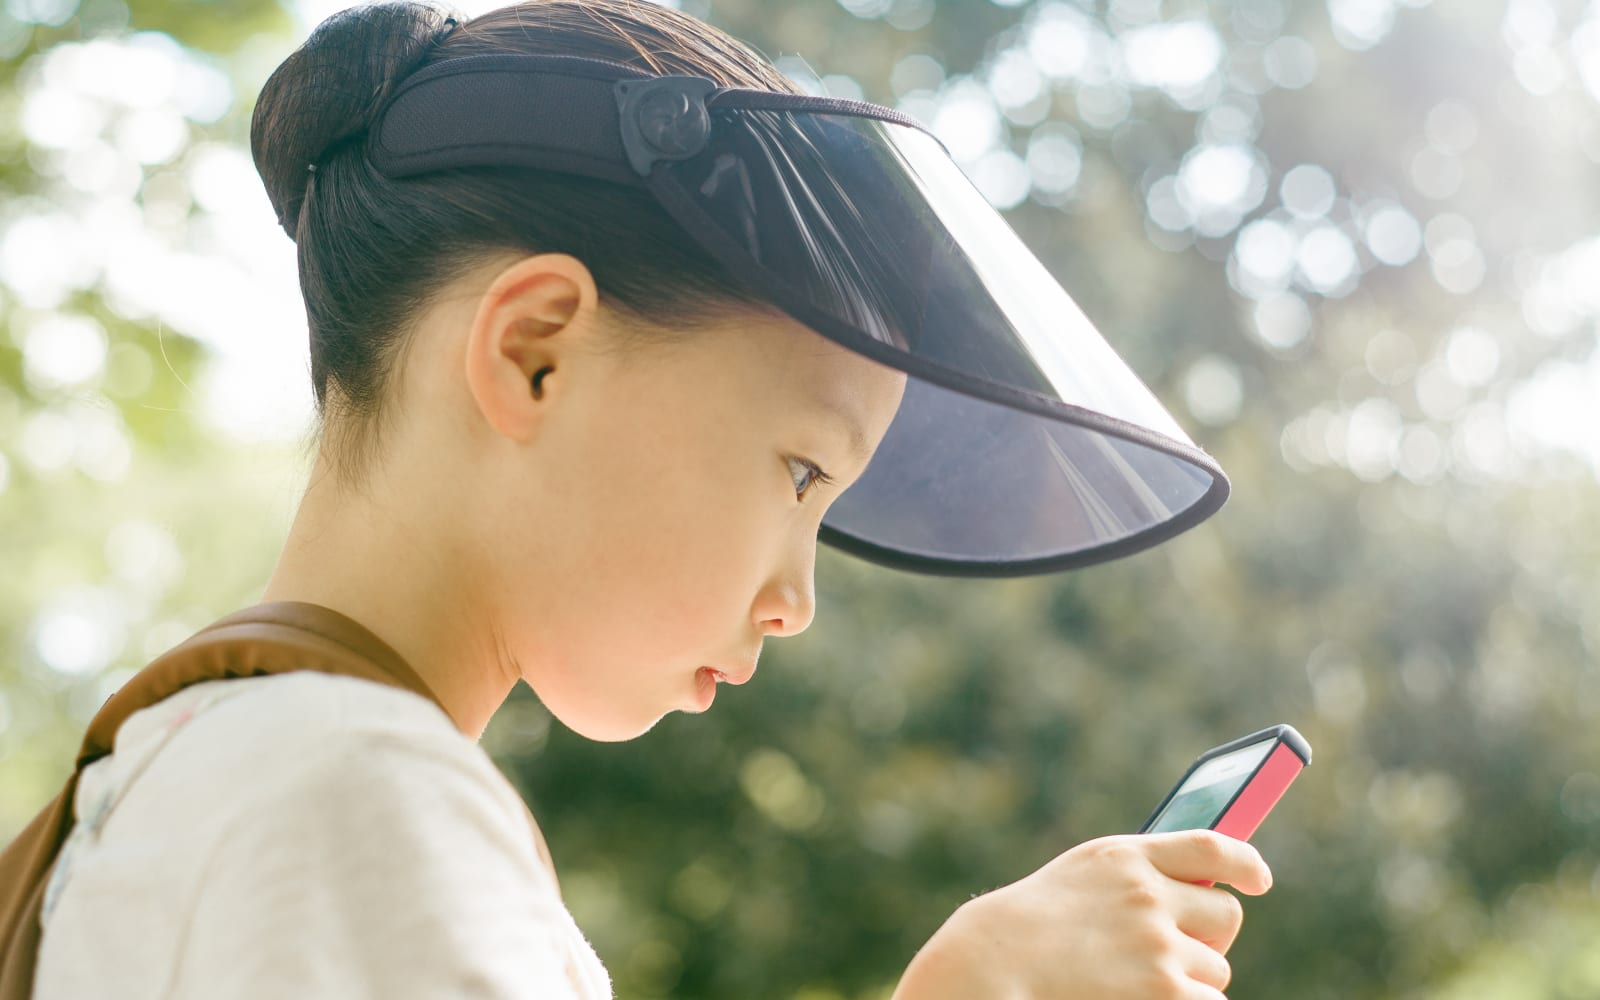 Pokémon Go' will offer parental controls with a log-in for kids